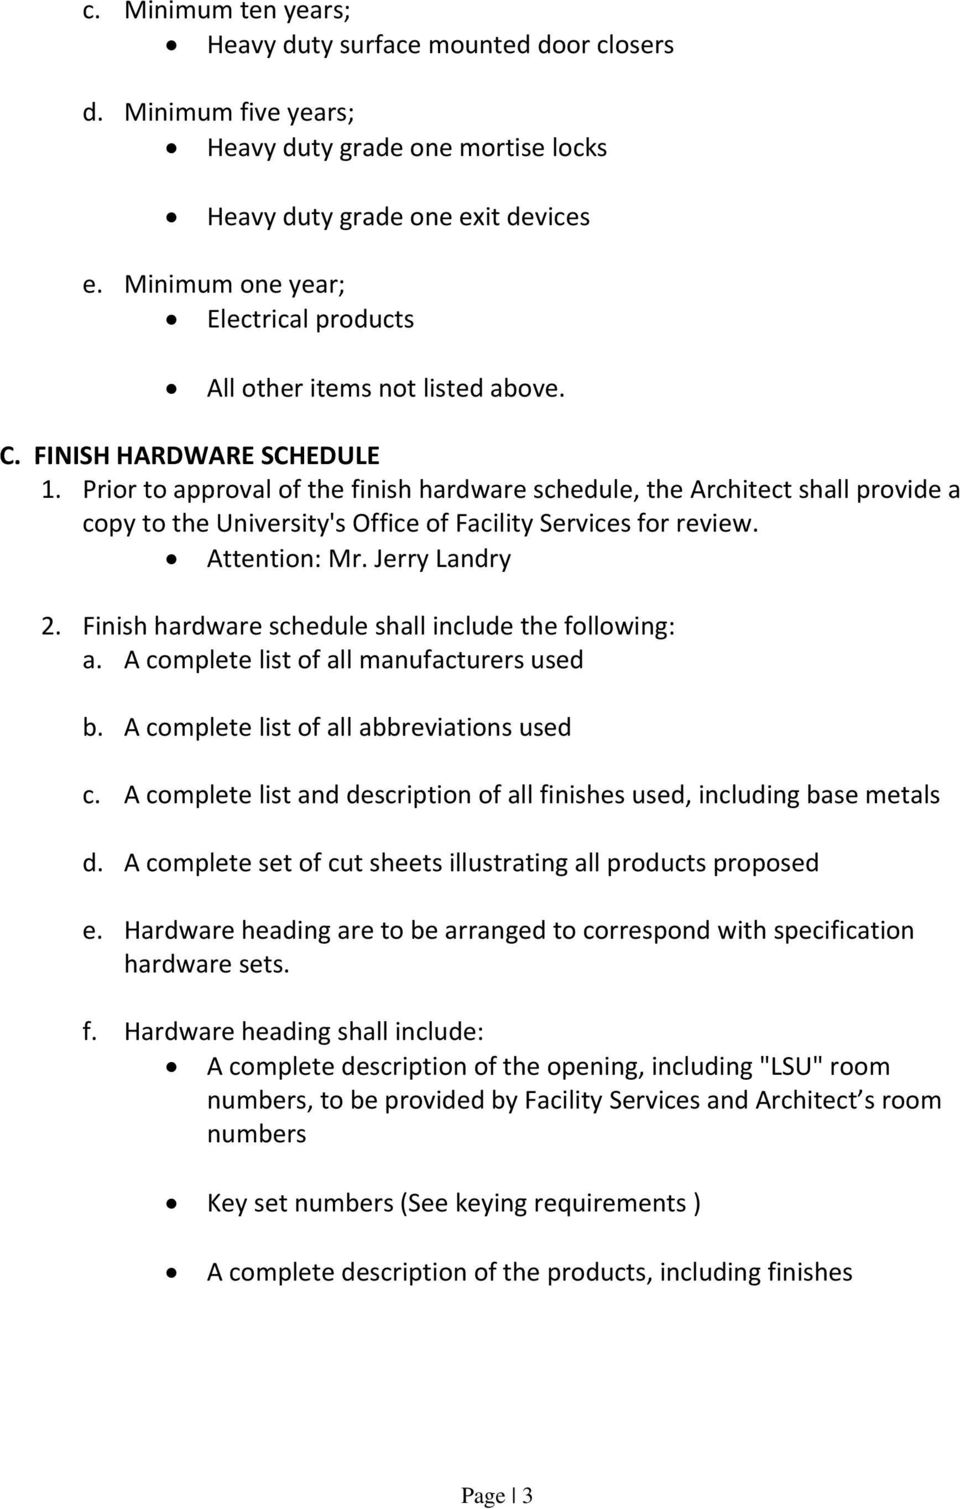 Prior to approval of the finish hardware schedule, the Architect shall provide a copy to the University's Office of Facility Services for review. Attention: Mr. Jerry Landry 2.